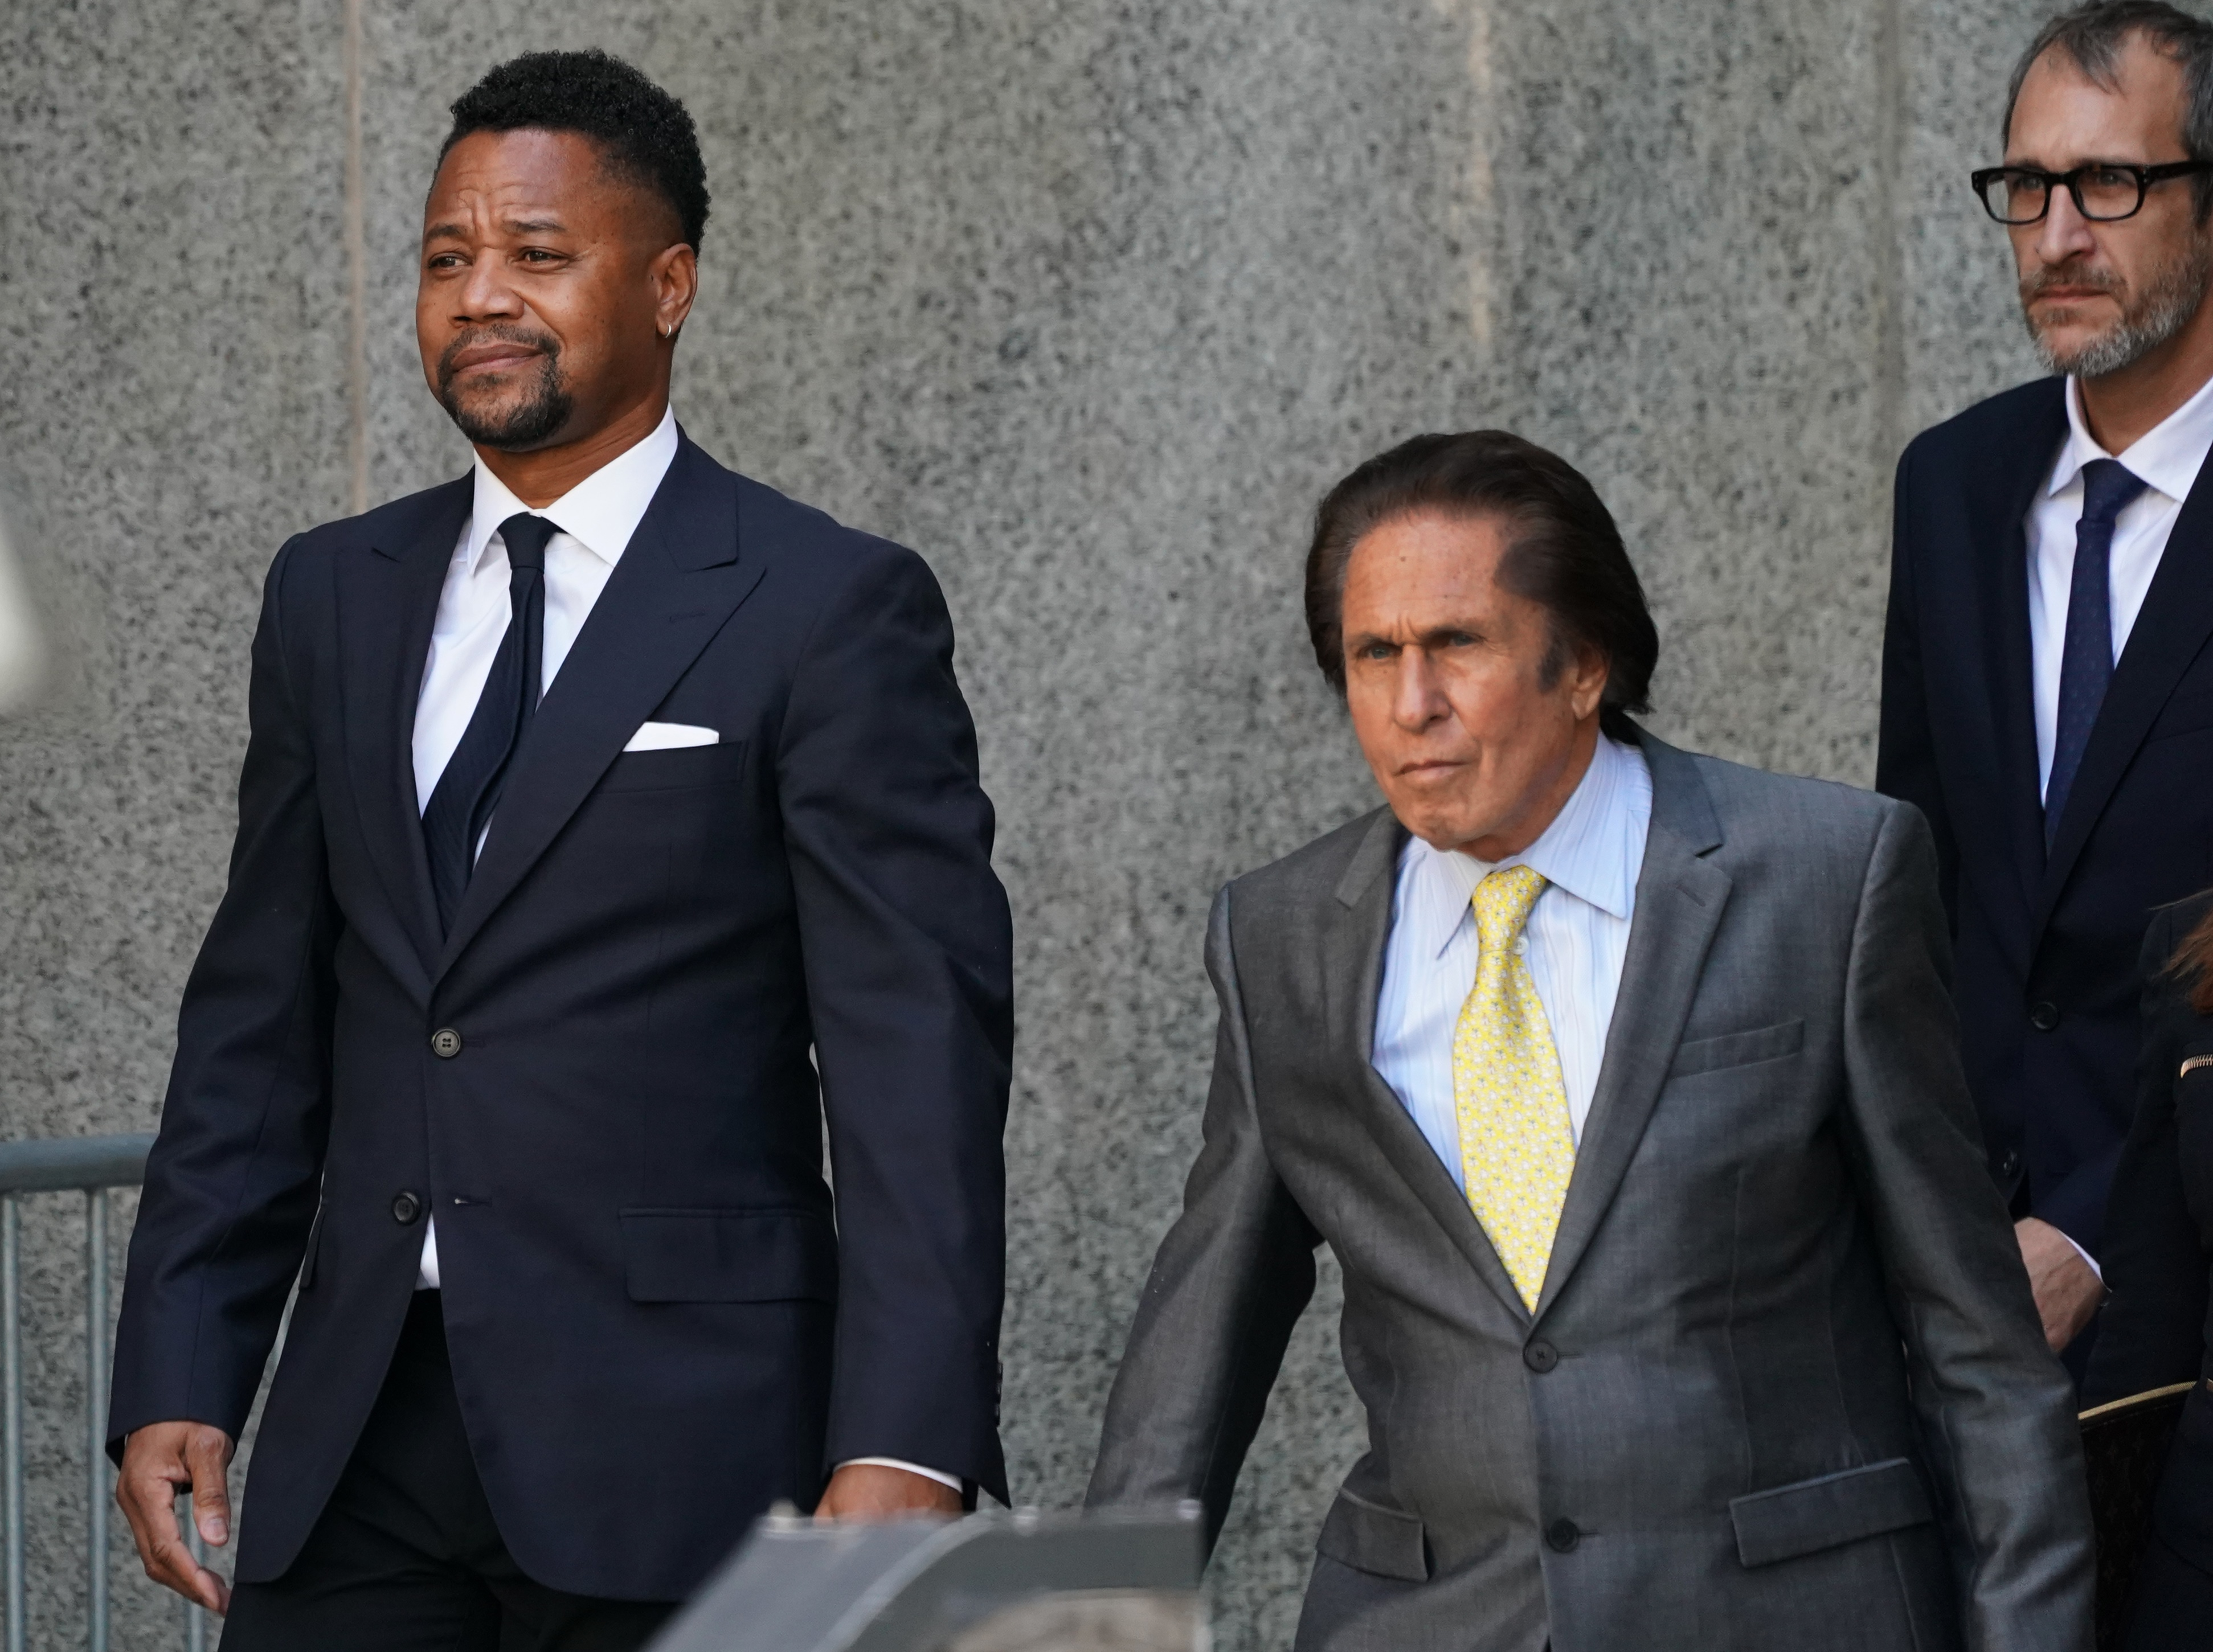 Oscar-winning actor Cuba Gooding Jr. (L), departs his court arraignment with his lawyer Mark Hellerin (C) New York October 15, 2019, in New York on October 15, 2019. - Gooding has previously been charged with forcible touching and sex abuse in relation to an alleged groping incident at a New York bar. (Photo by TIMOTHY A. CLARY/AFP via Getty Images)